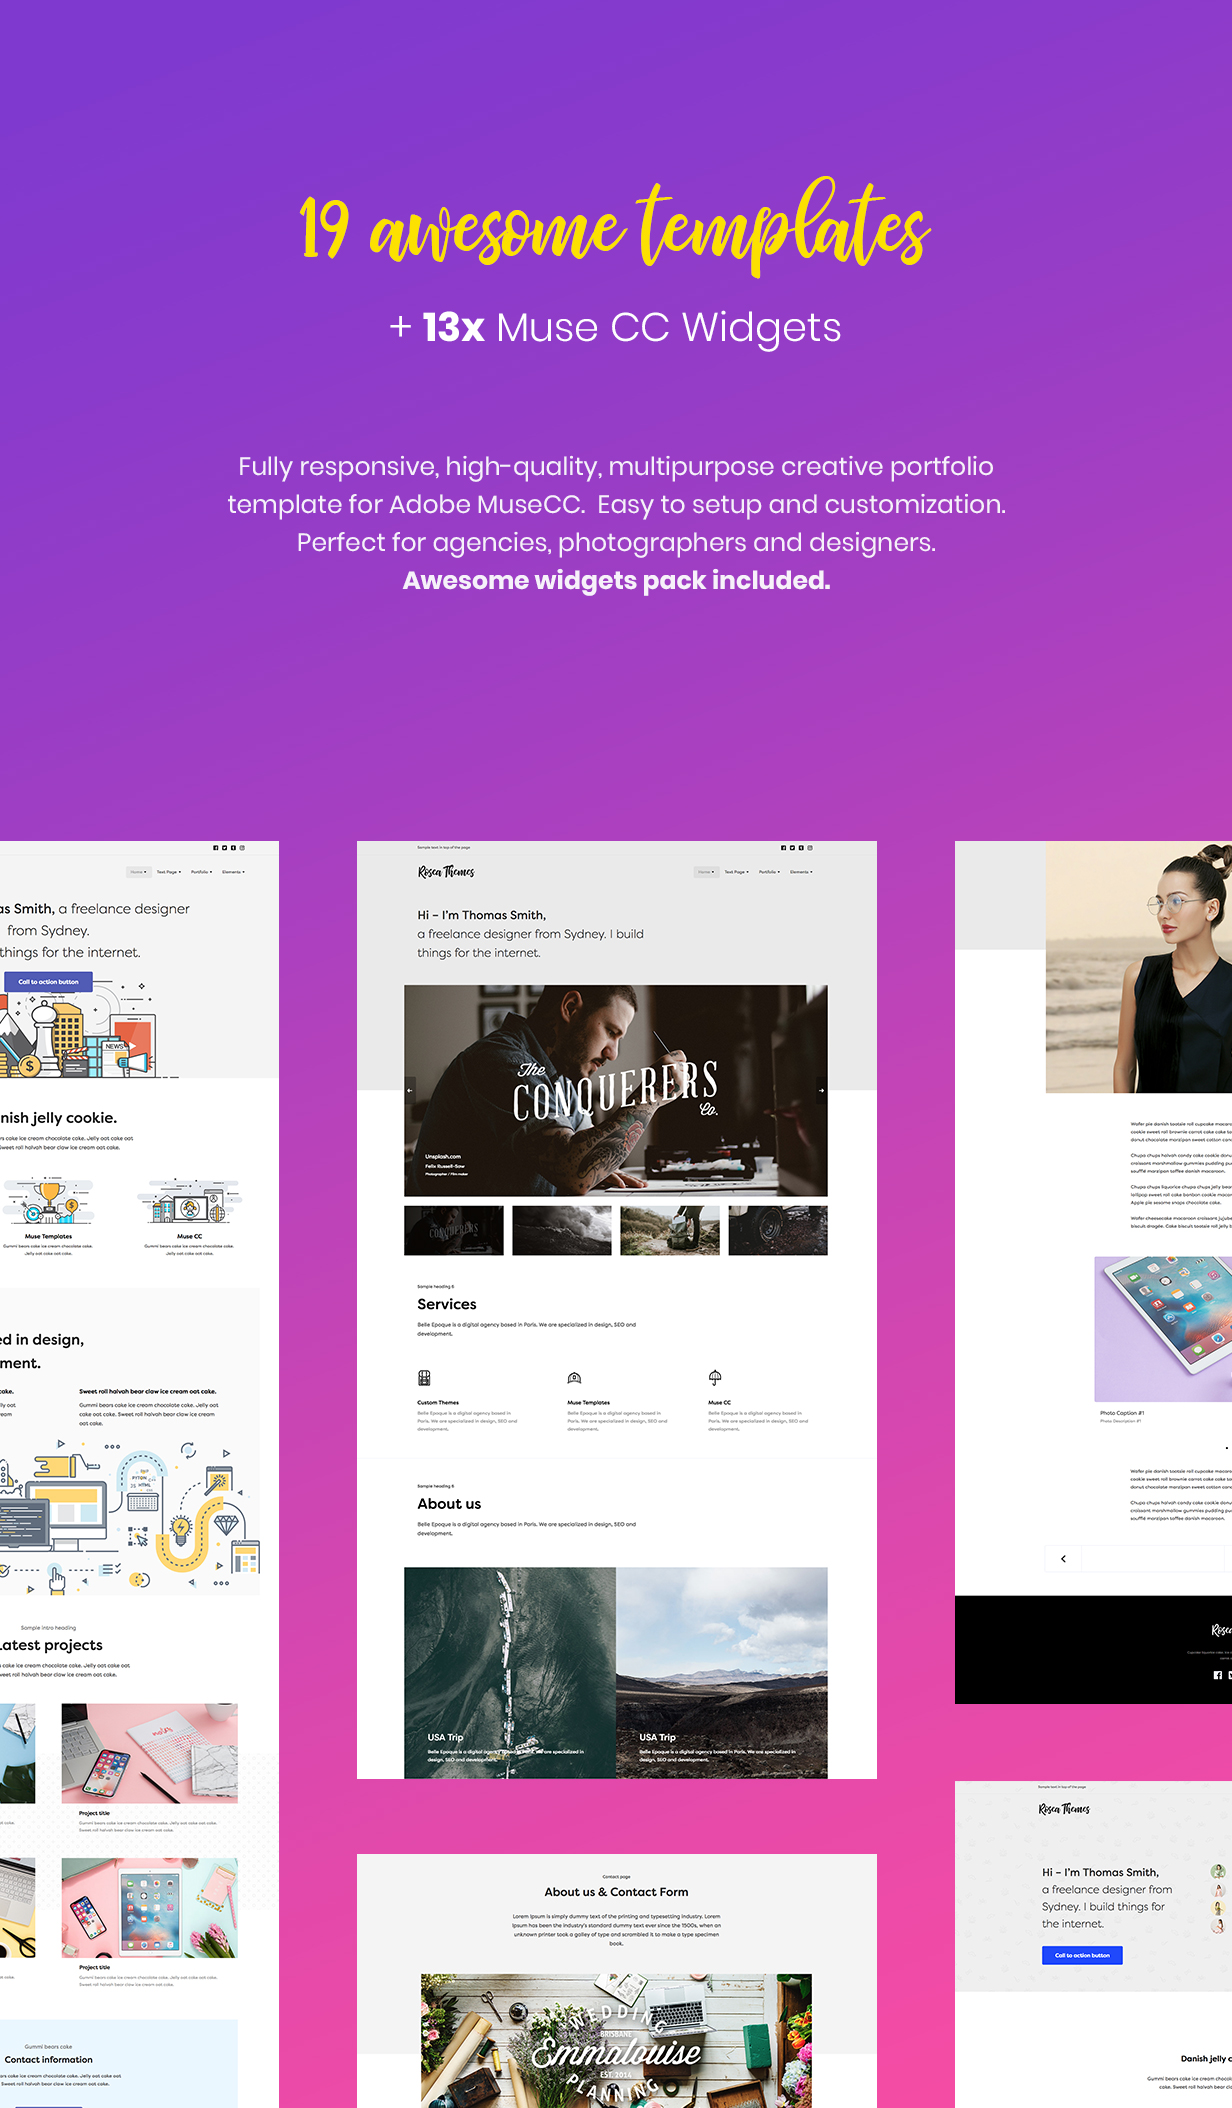 Simple - Creative Portfolio Muse CC Templates and Widgets for Adobe Muse CC